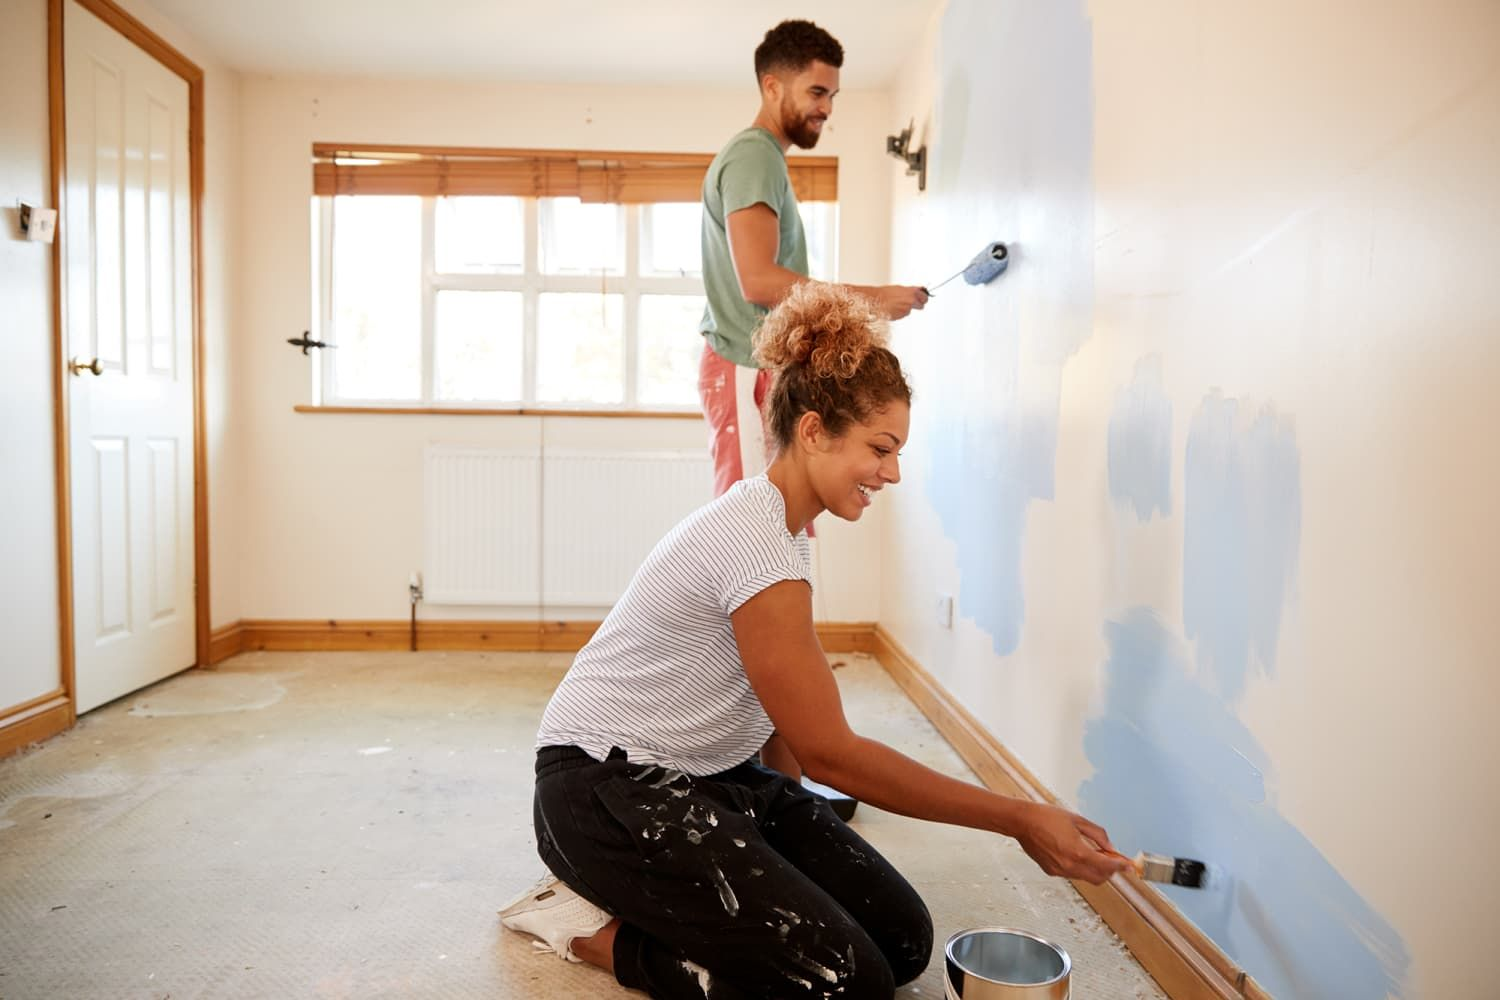 The Easiest Home Improvements Before Selling